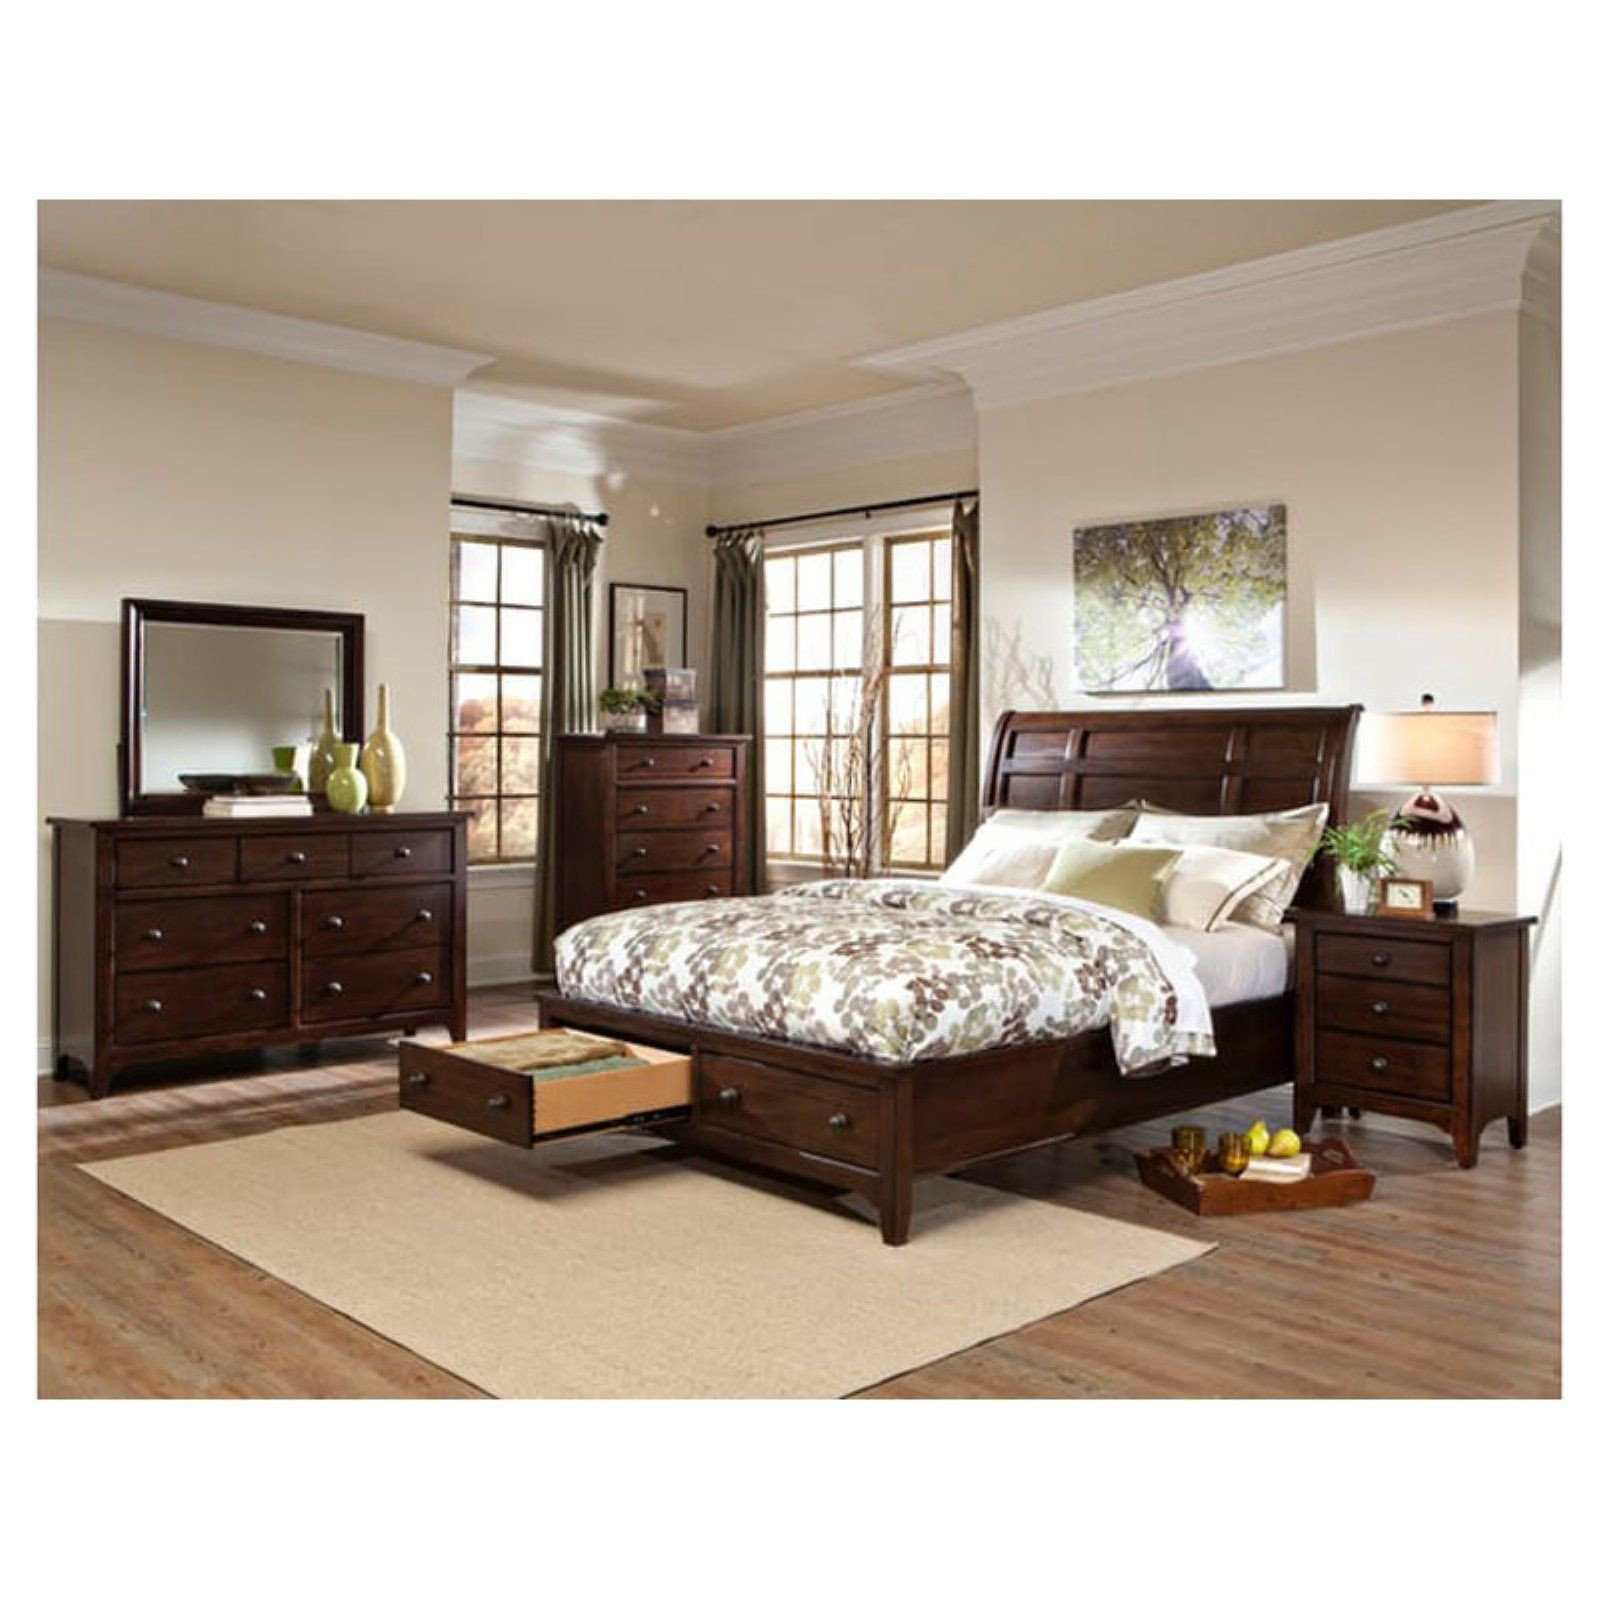 California King Size Bedroom Furniture Set Awesome Imagio Home Jackson Sleigh Storage Bed Size California